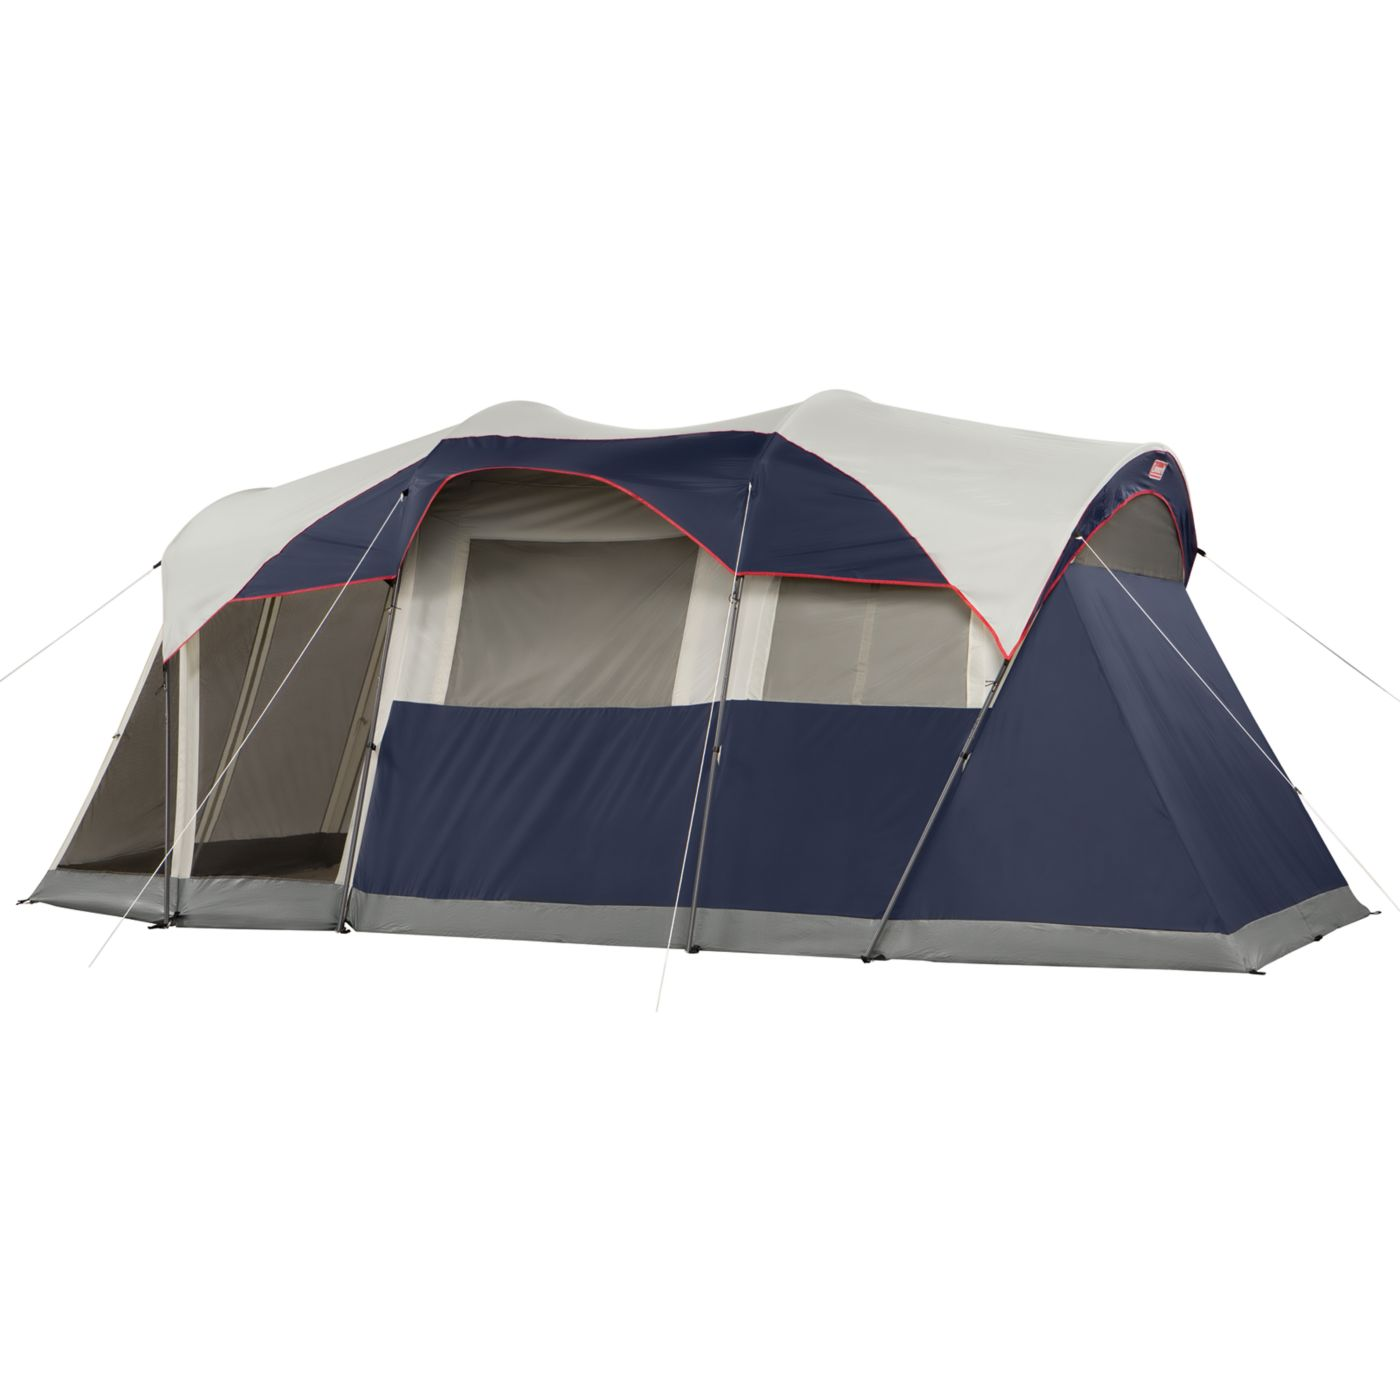 ... Elite WeatherMaster® 6-Person Lighted Tent with Screen Room image 1 ...  sc 1 st  Coleman & Elite WeatherMaster® 6-Person Lighted Tent with Screen Room   Coleman